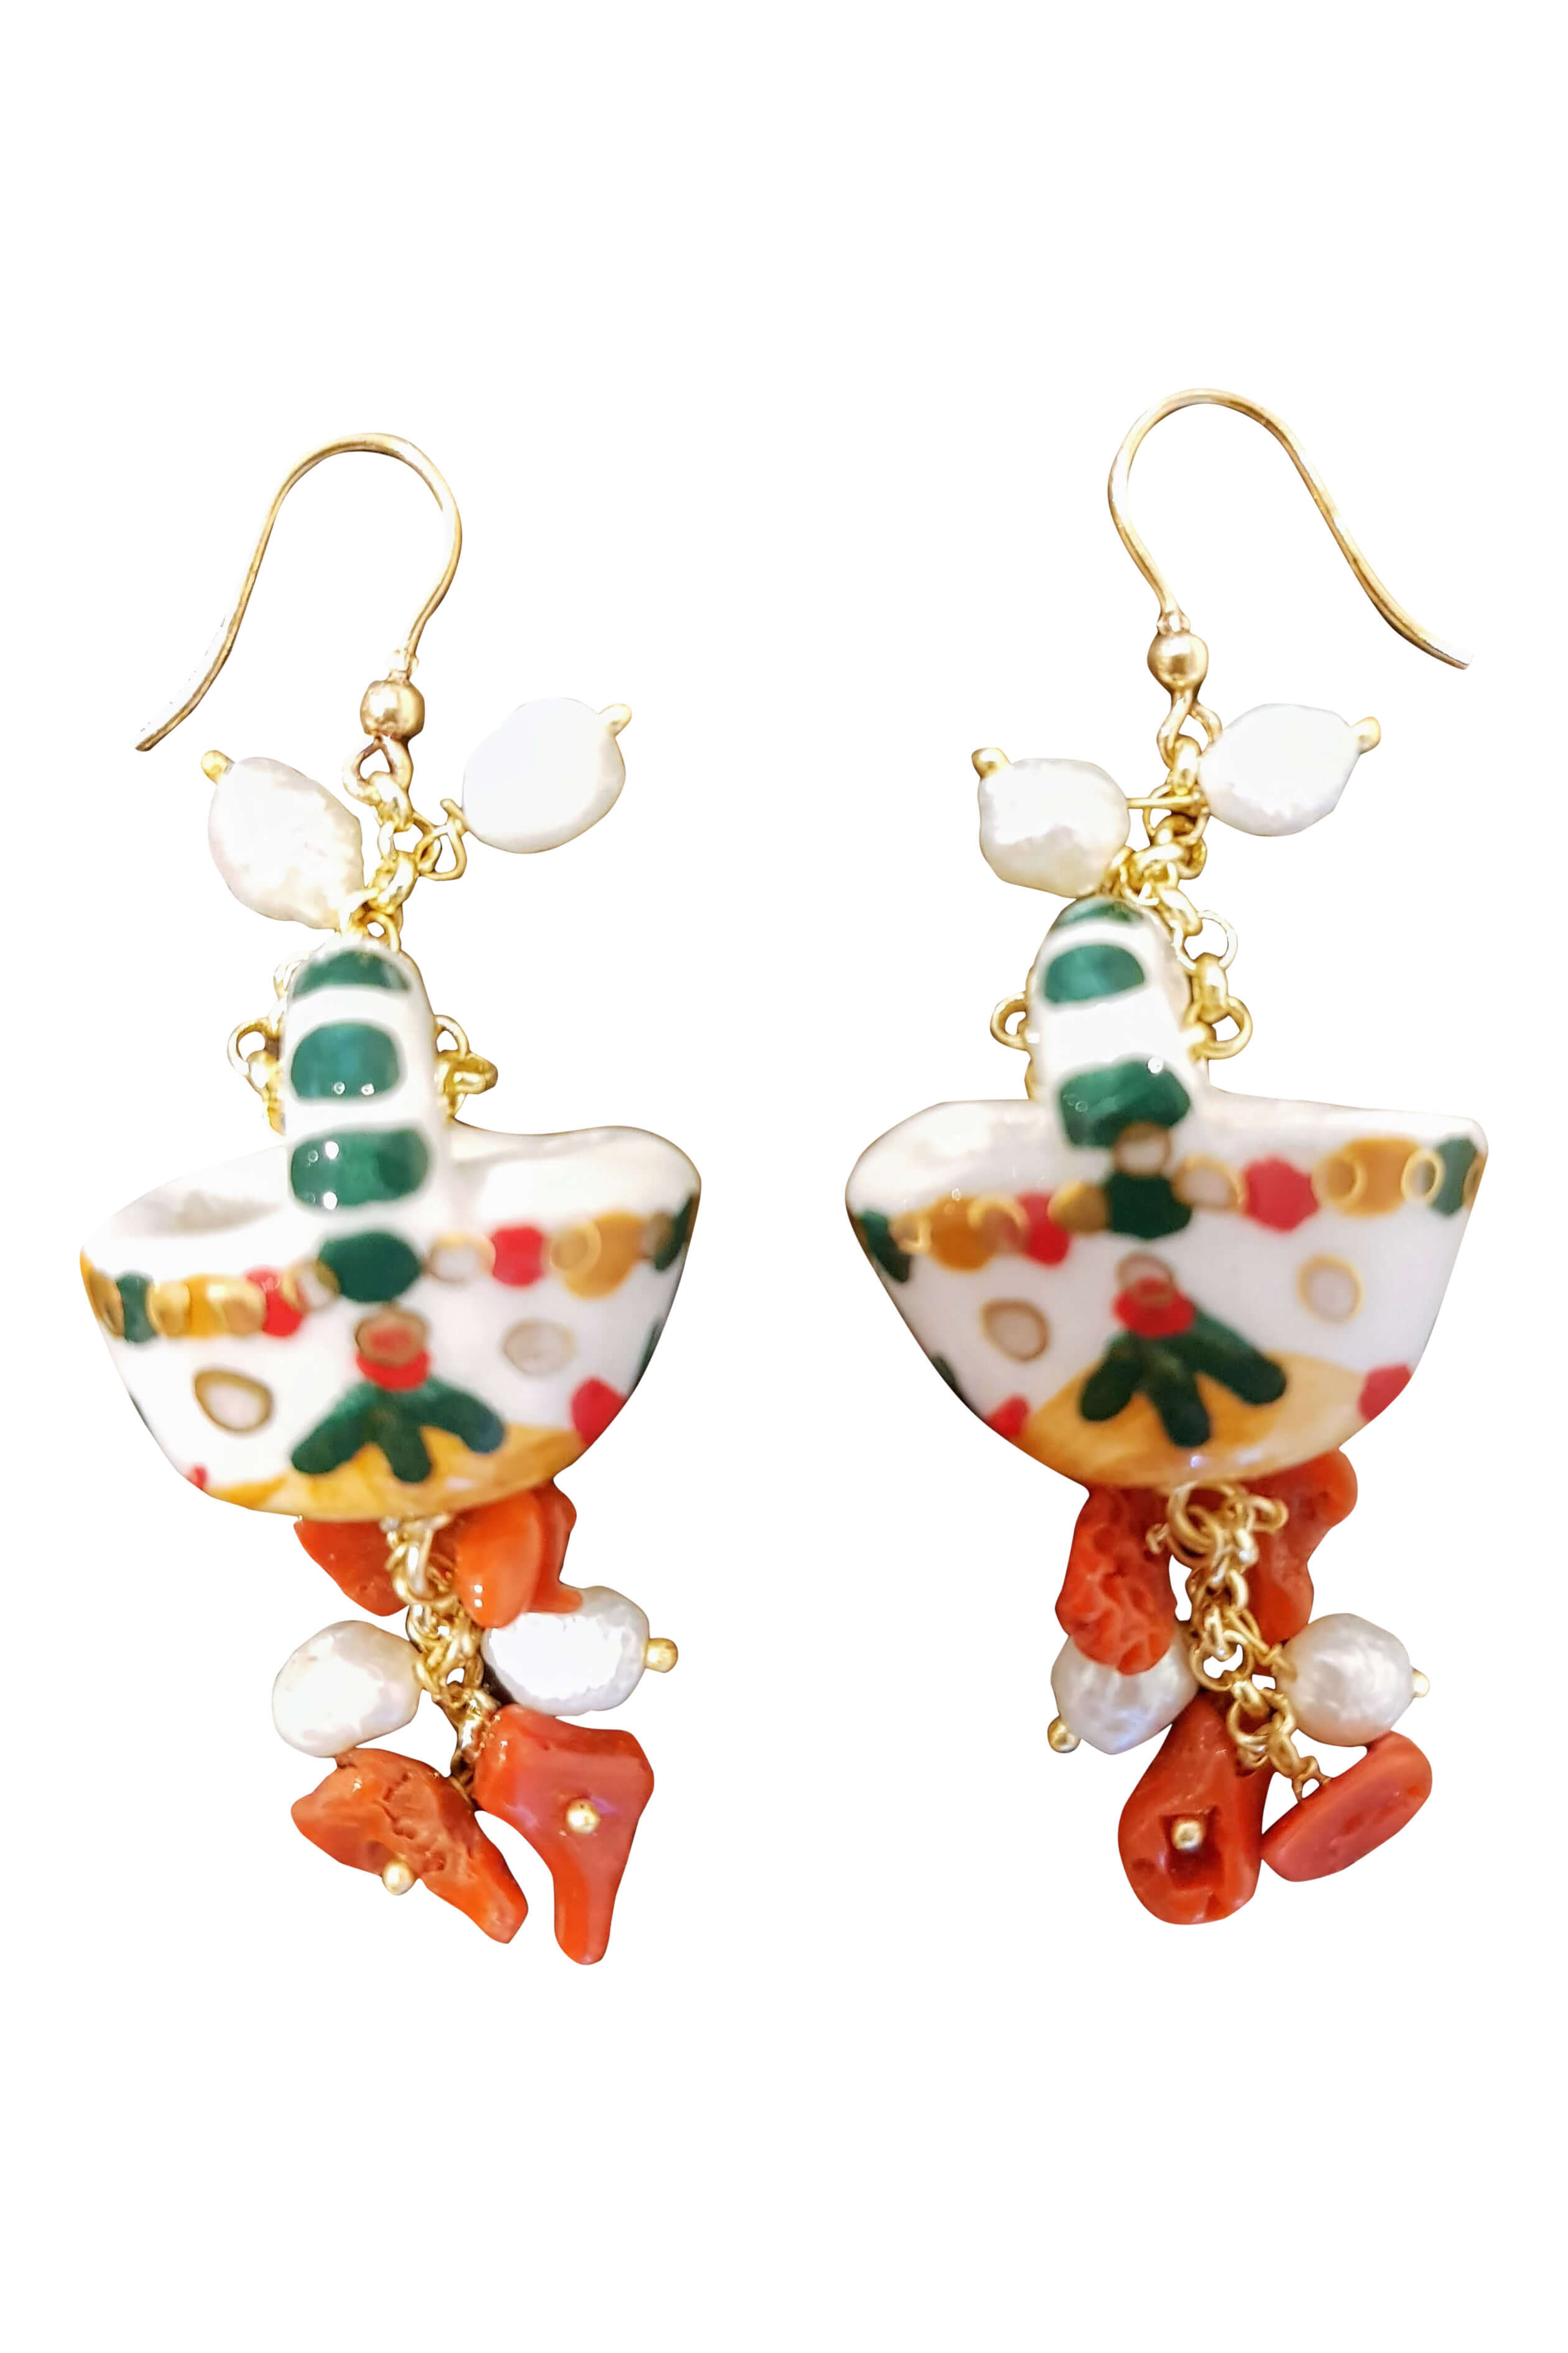 earrings with pearls, corals and painted ceramics MAIORI